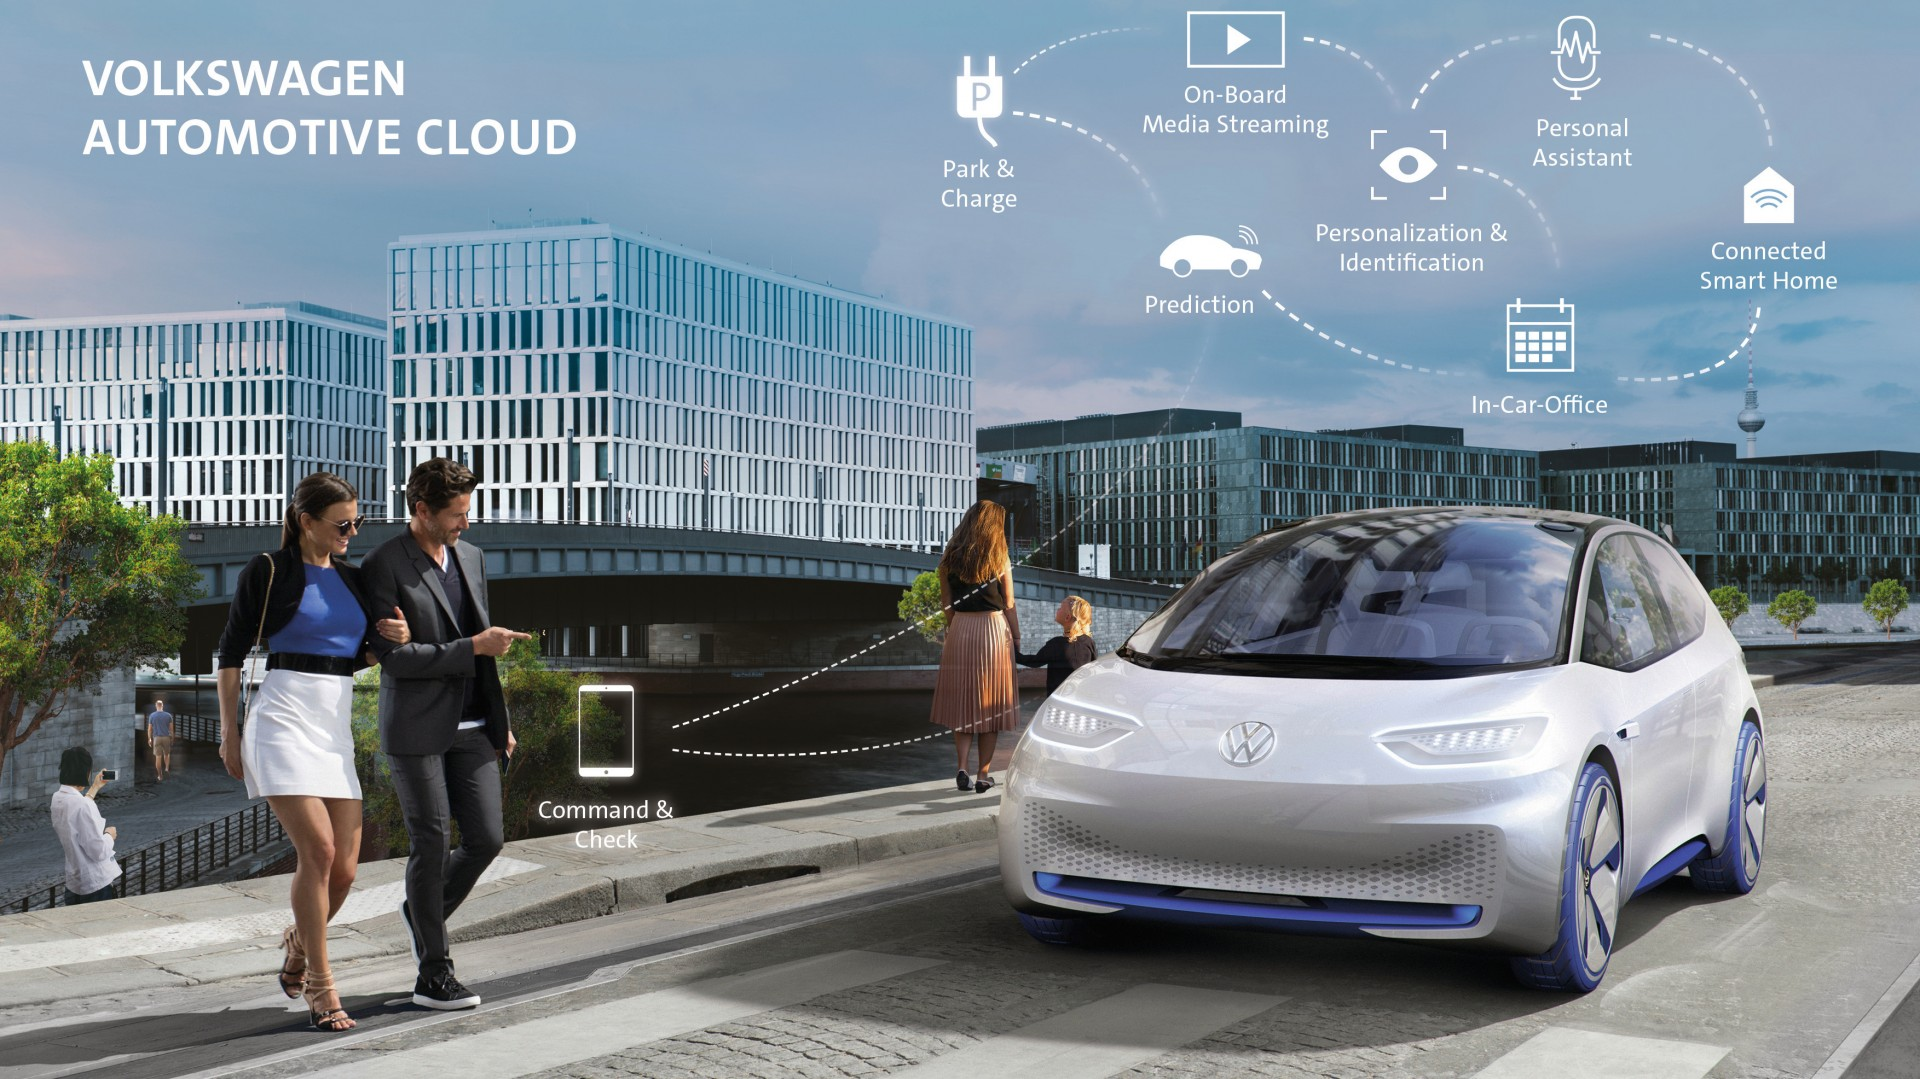 Volkswagen Automotive Cloud in de hoogste versnelling